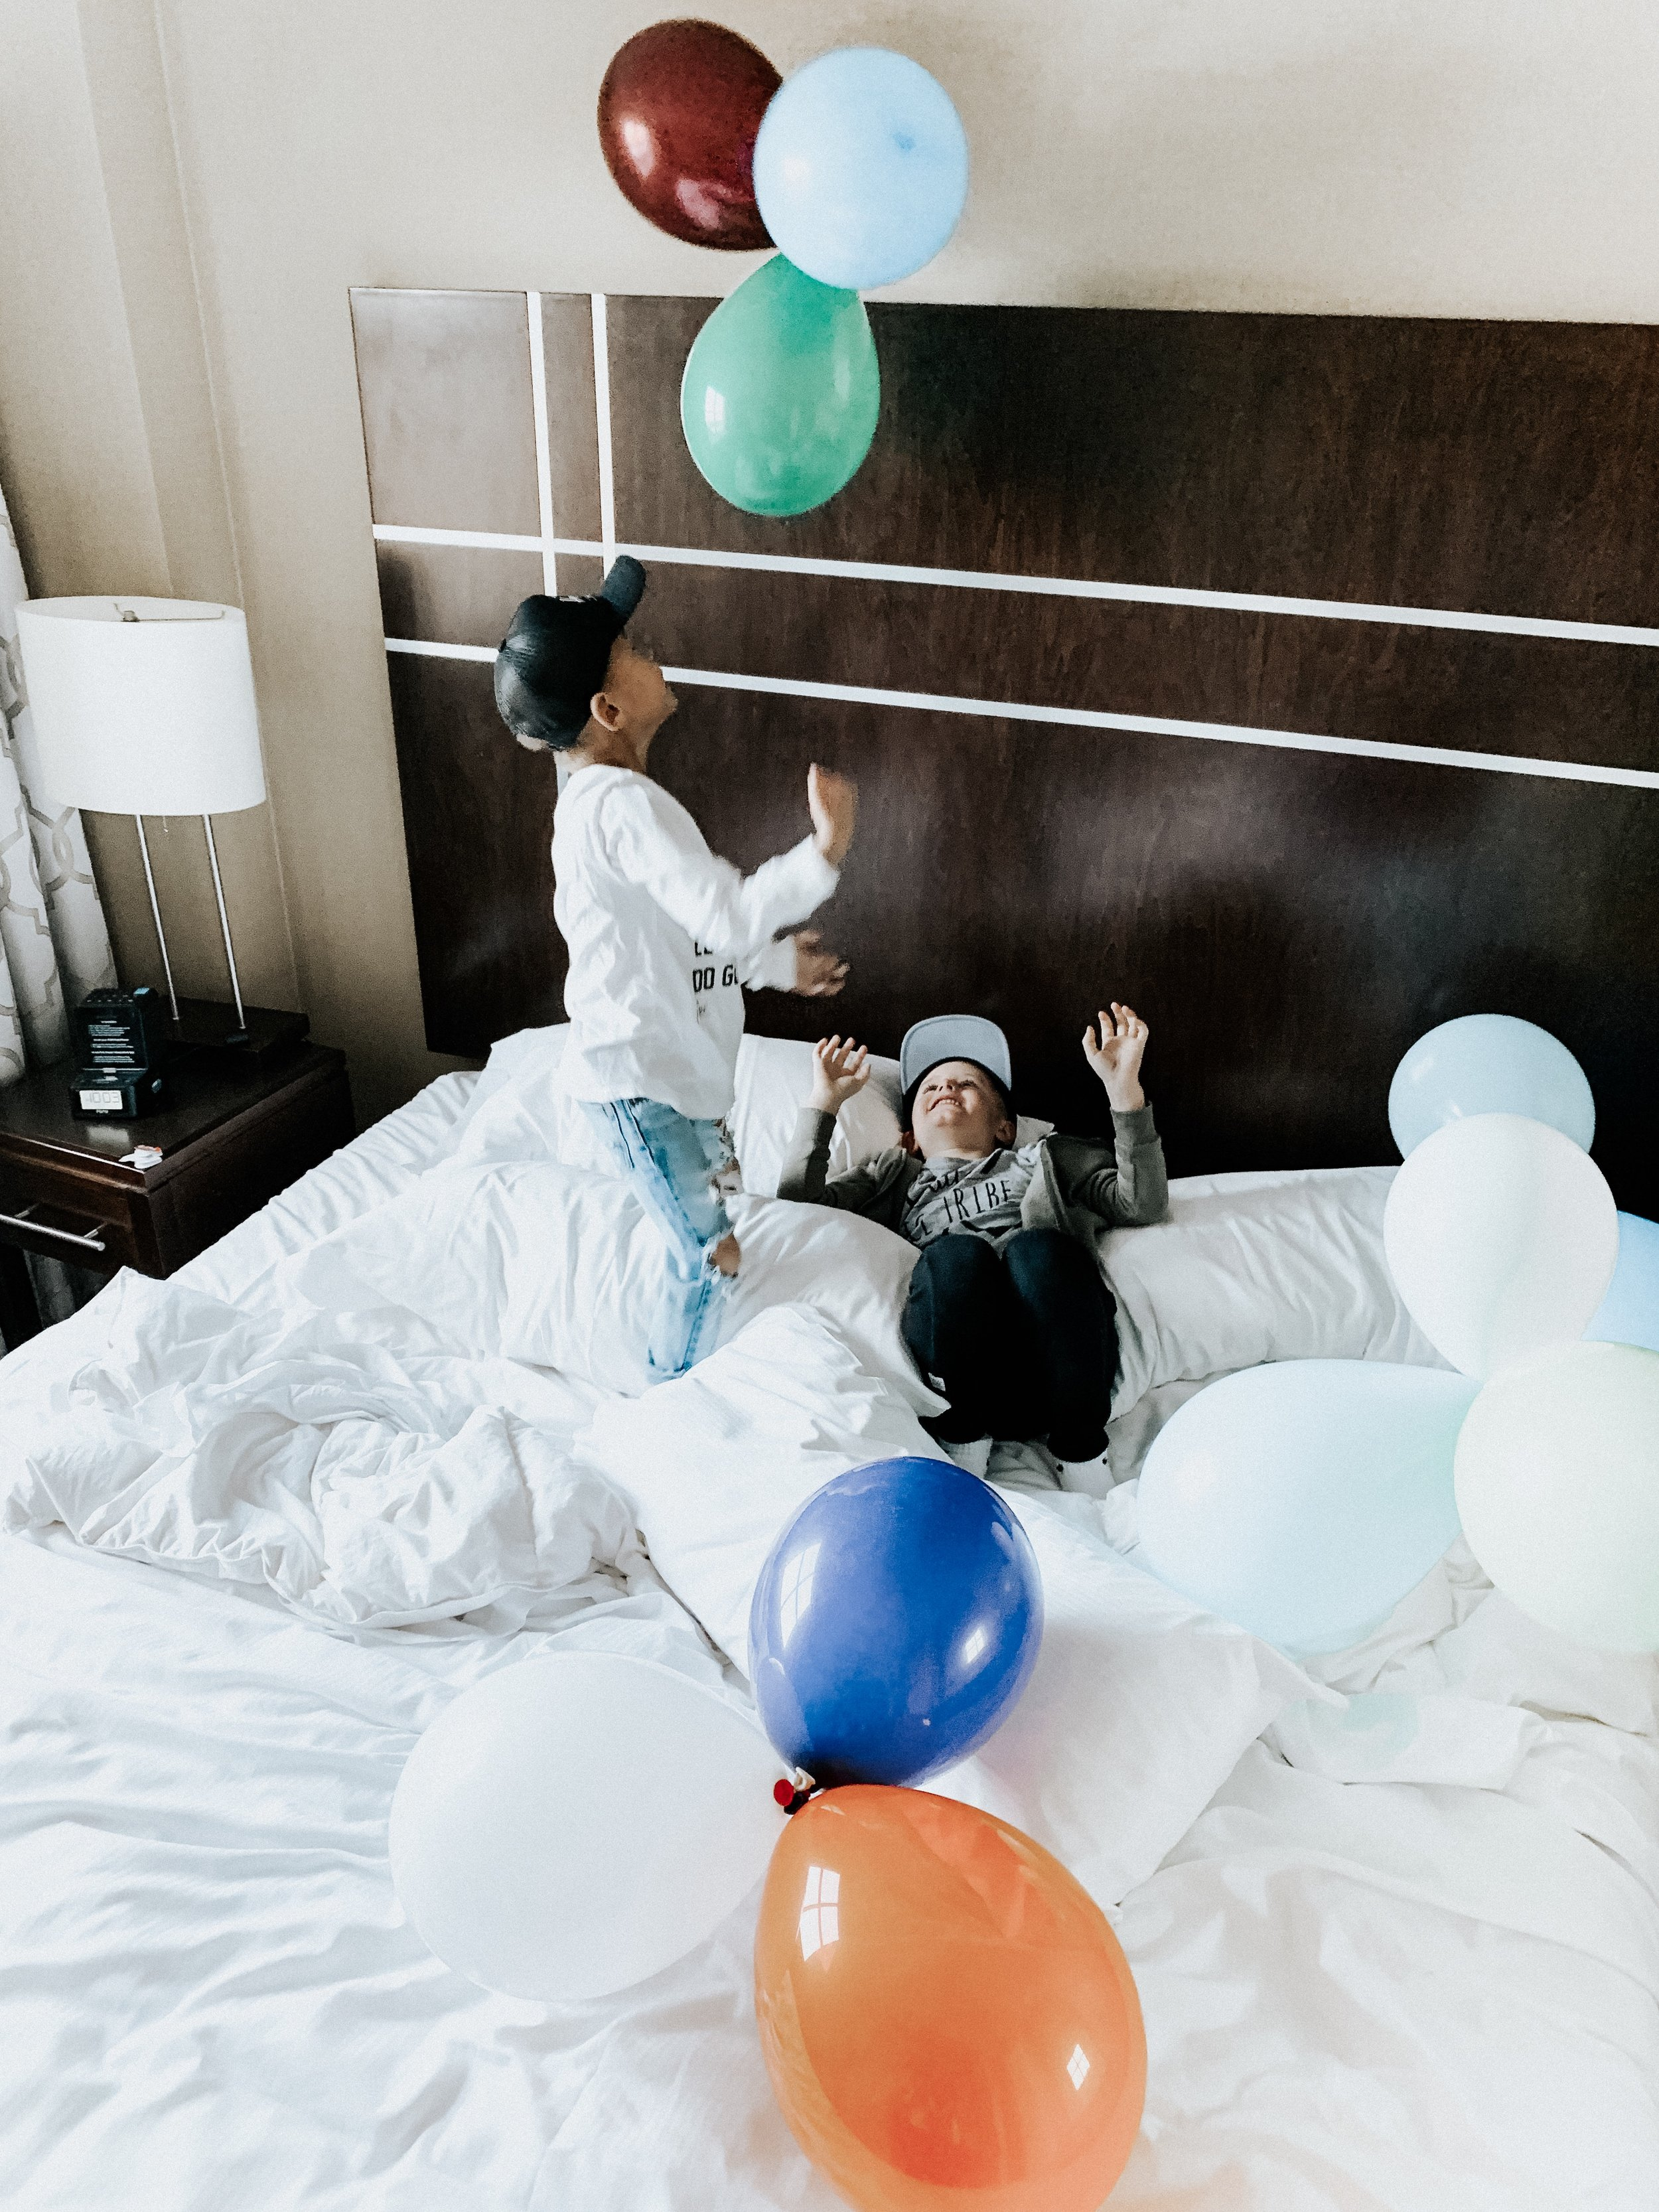 The boys had a hay day jumping on the beds and playing with the balloons!